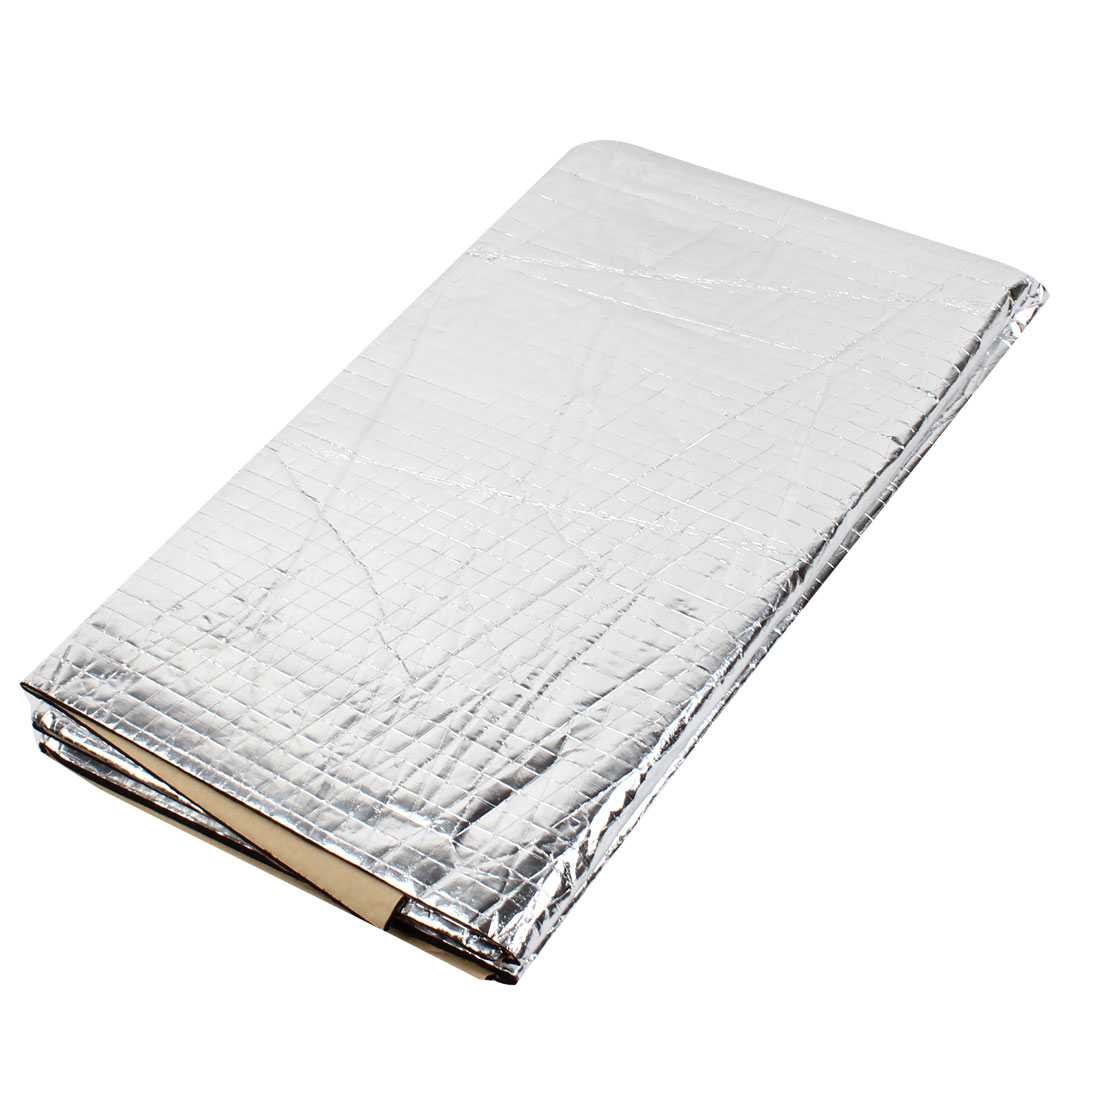 Self Adhesive 120cmx100cm Aluminum Foil Foam Engine Heat Insulation Mat for Car